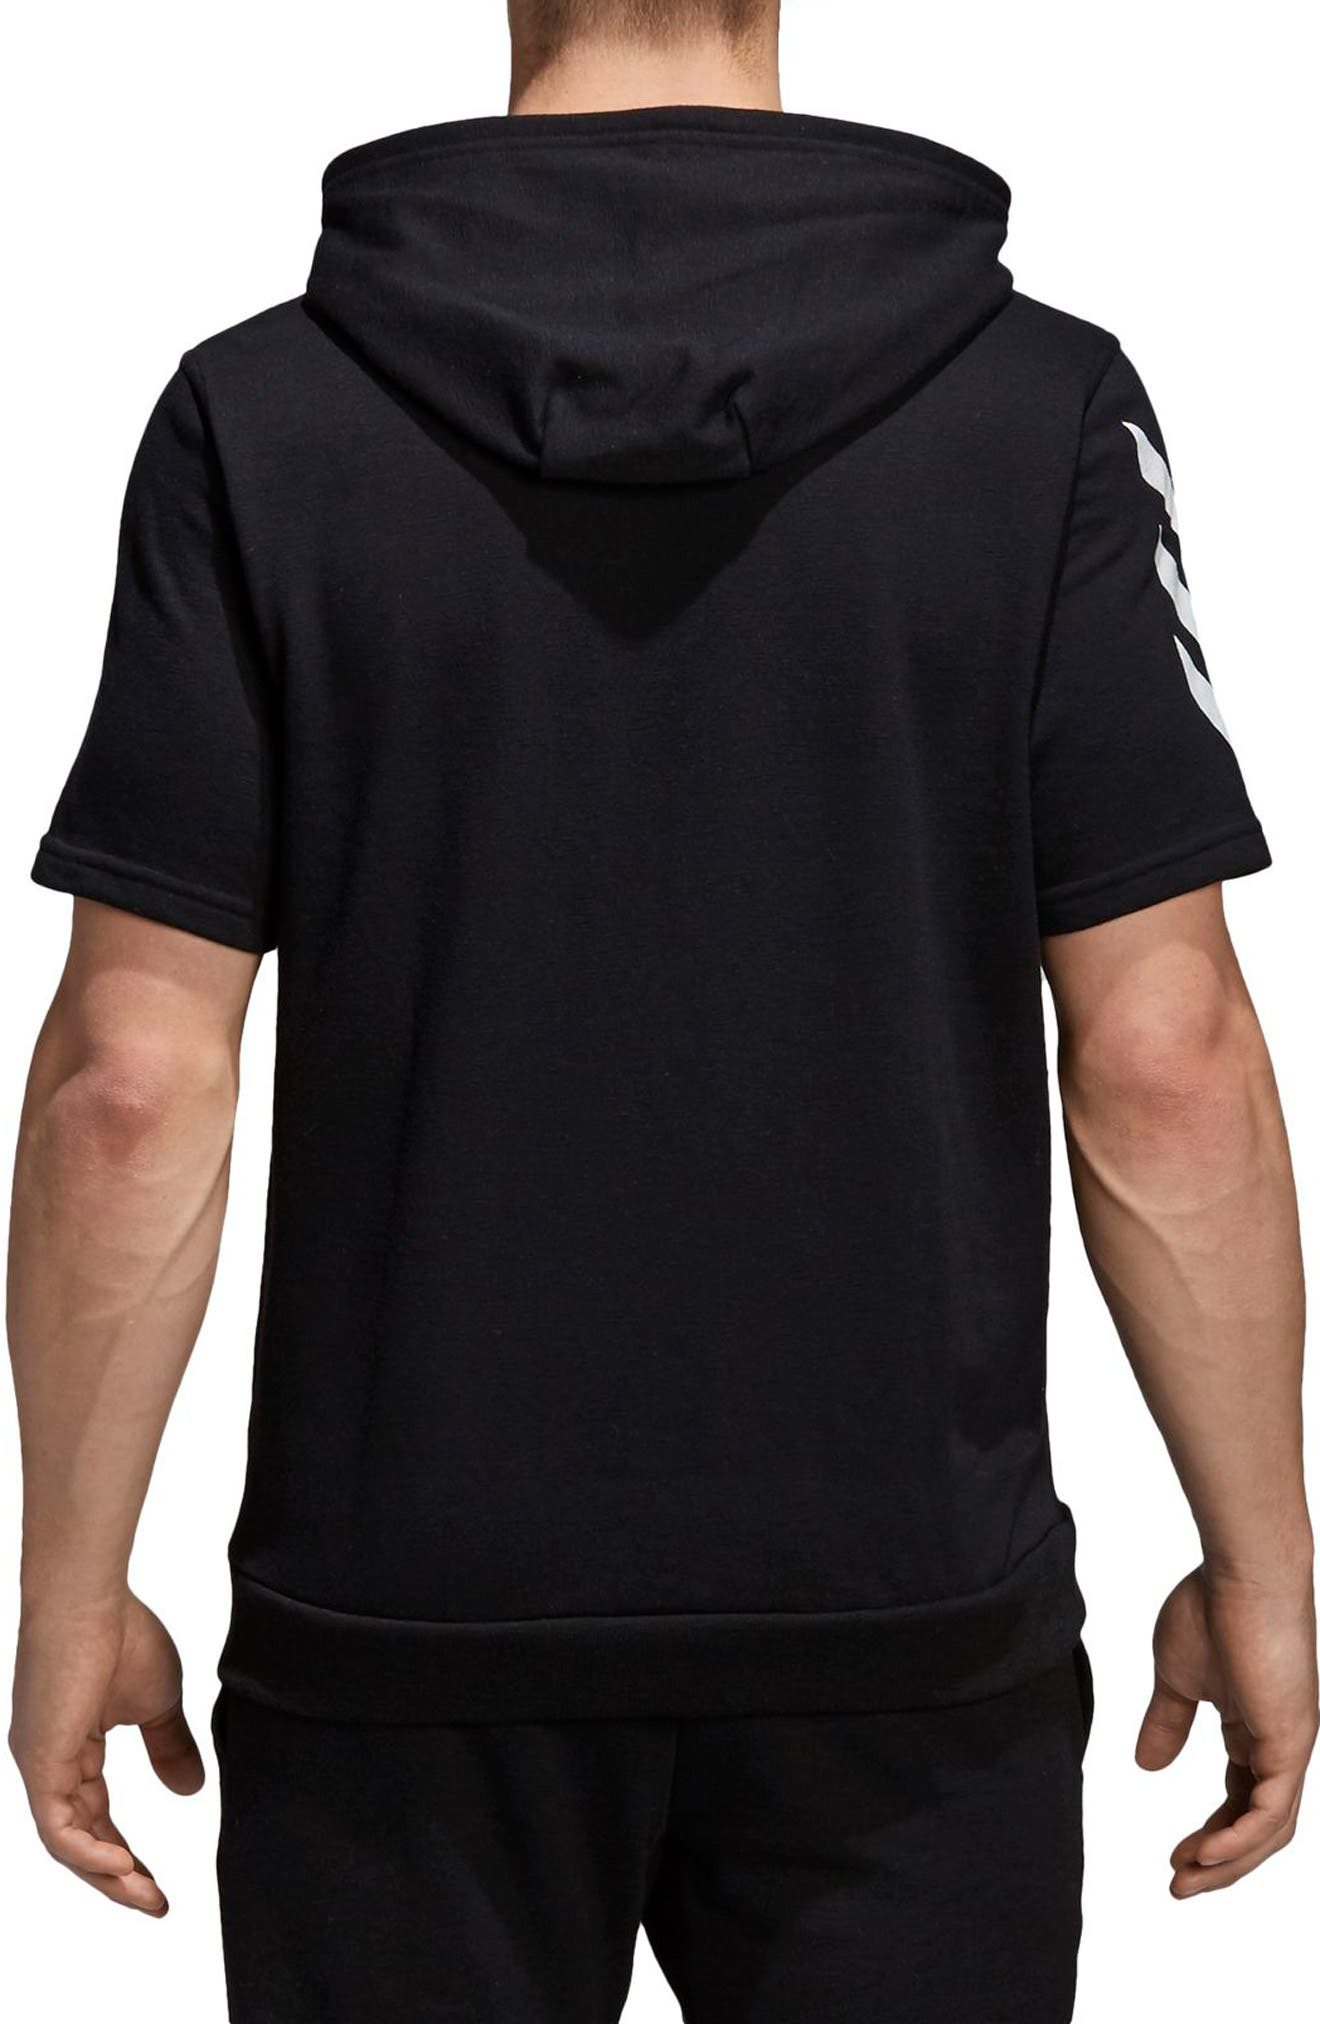 Pick-Up Shooter Short Sleeve Hoodie,                             Alternate thumbnail 2, color,                             001